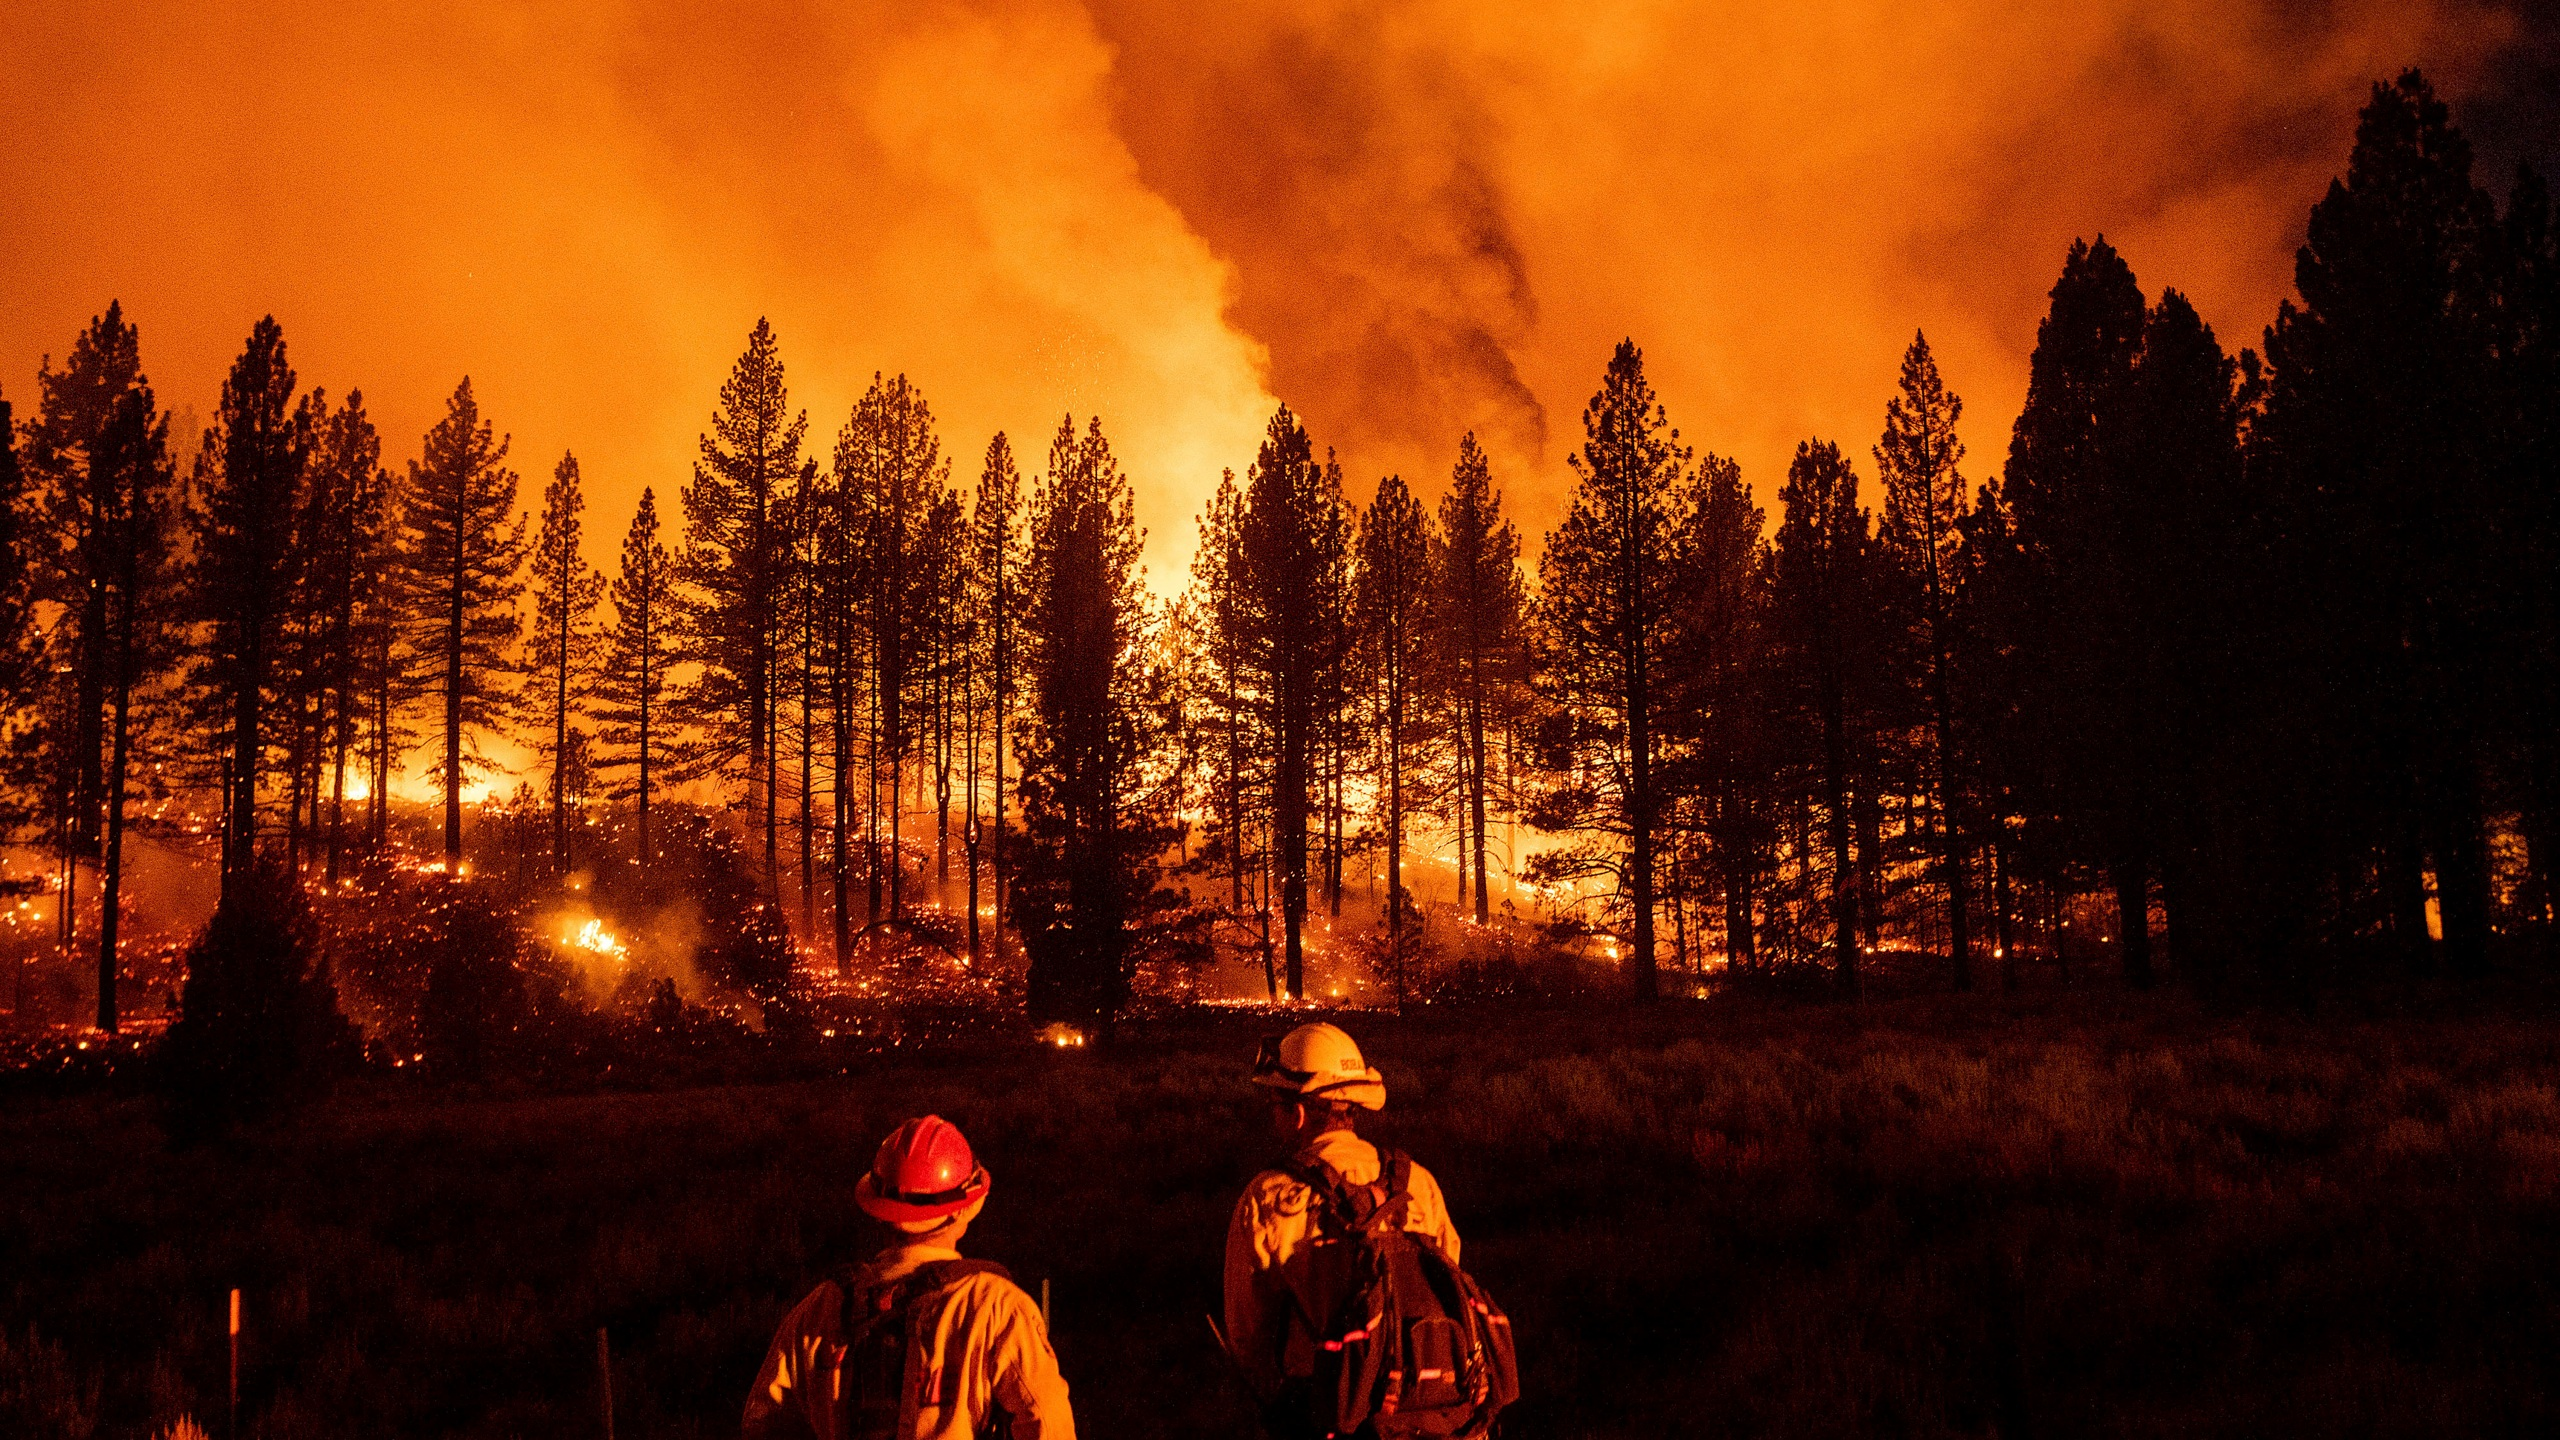 Firefighters monitor the Sugar Fire, part of the Beckwourth Complex Fire, as it burns at Frenchman Lake in Plumas National Forest on July 8, 2021. (Noah Berger / Associated Press)